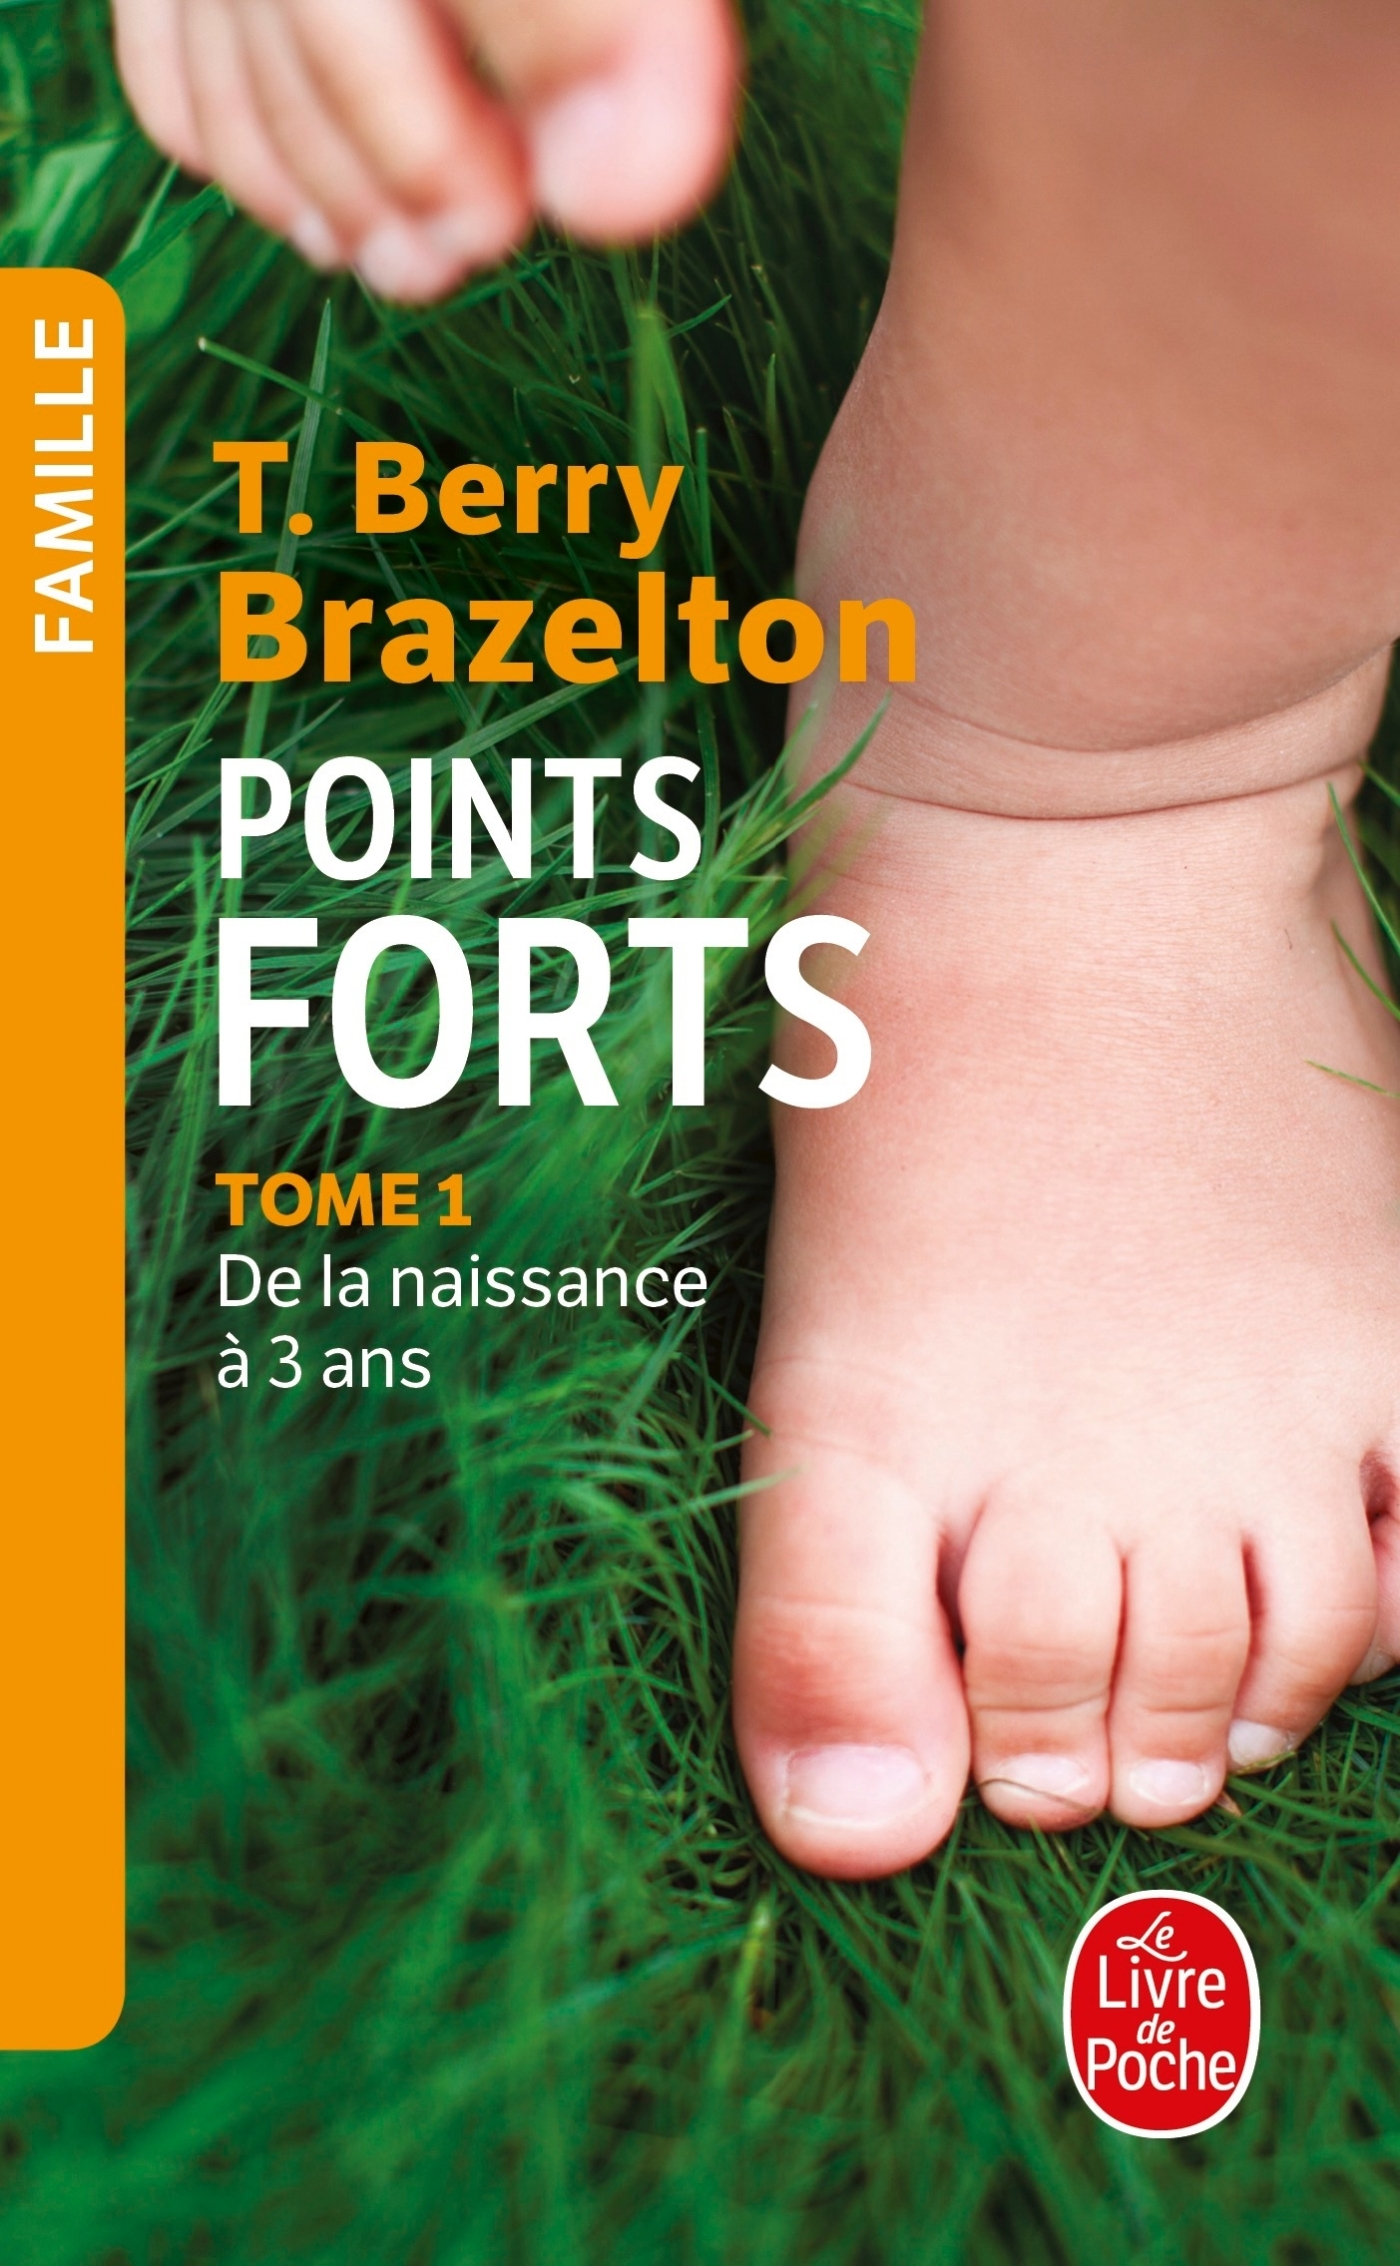 POINTS FORTS TOME 1